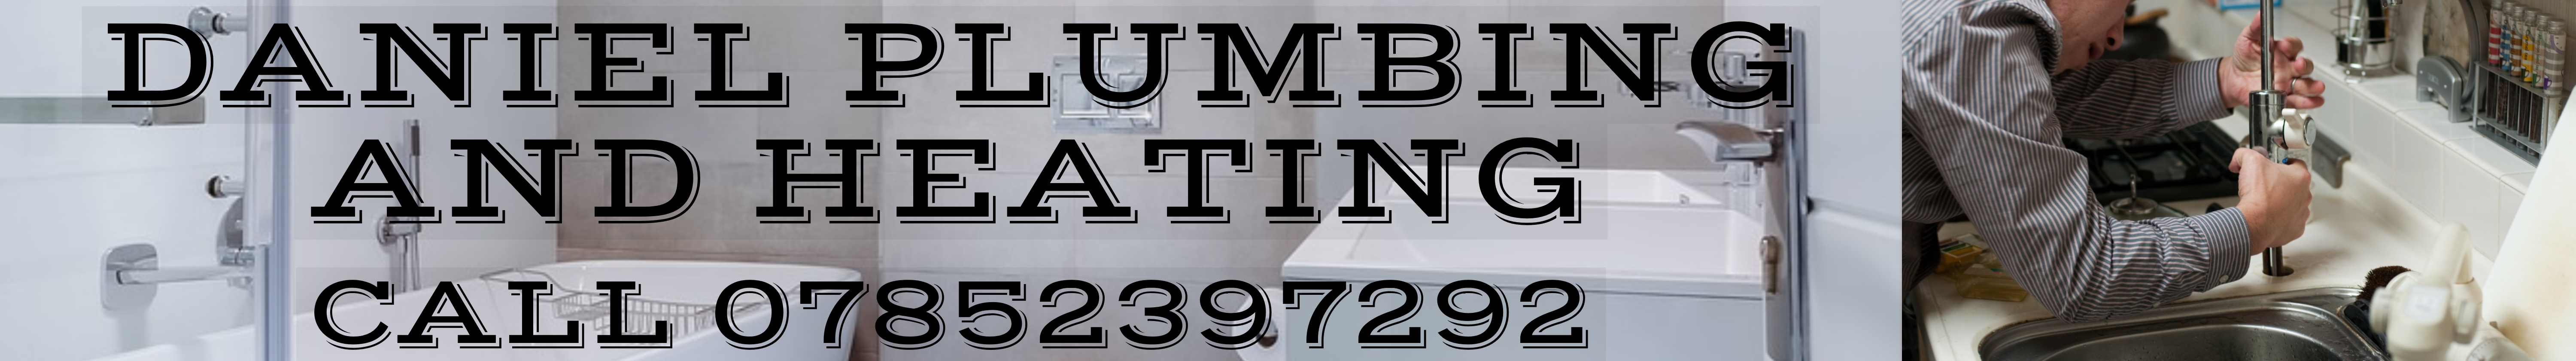 Plumbers local to me Manchester